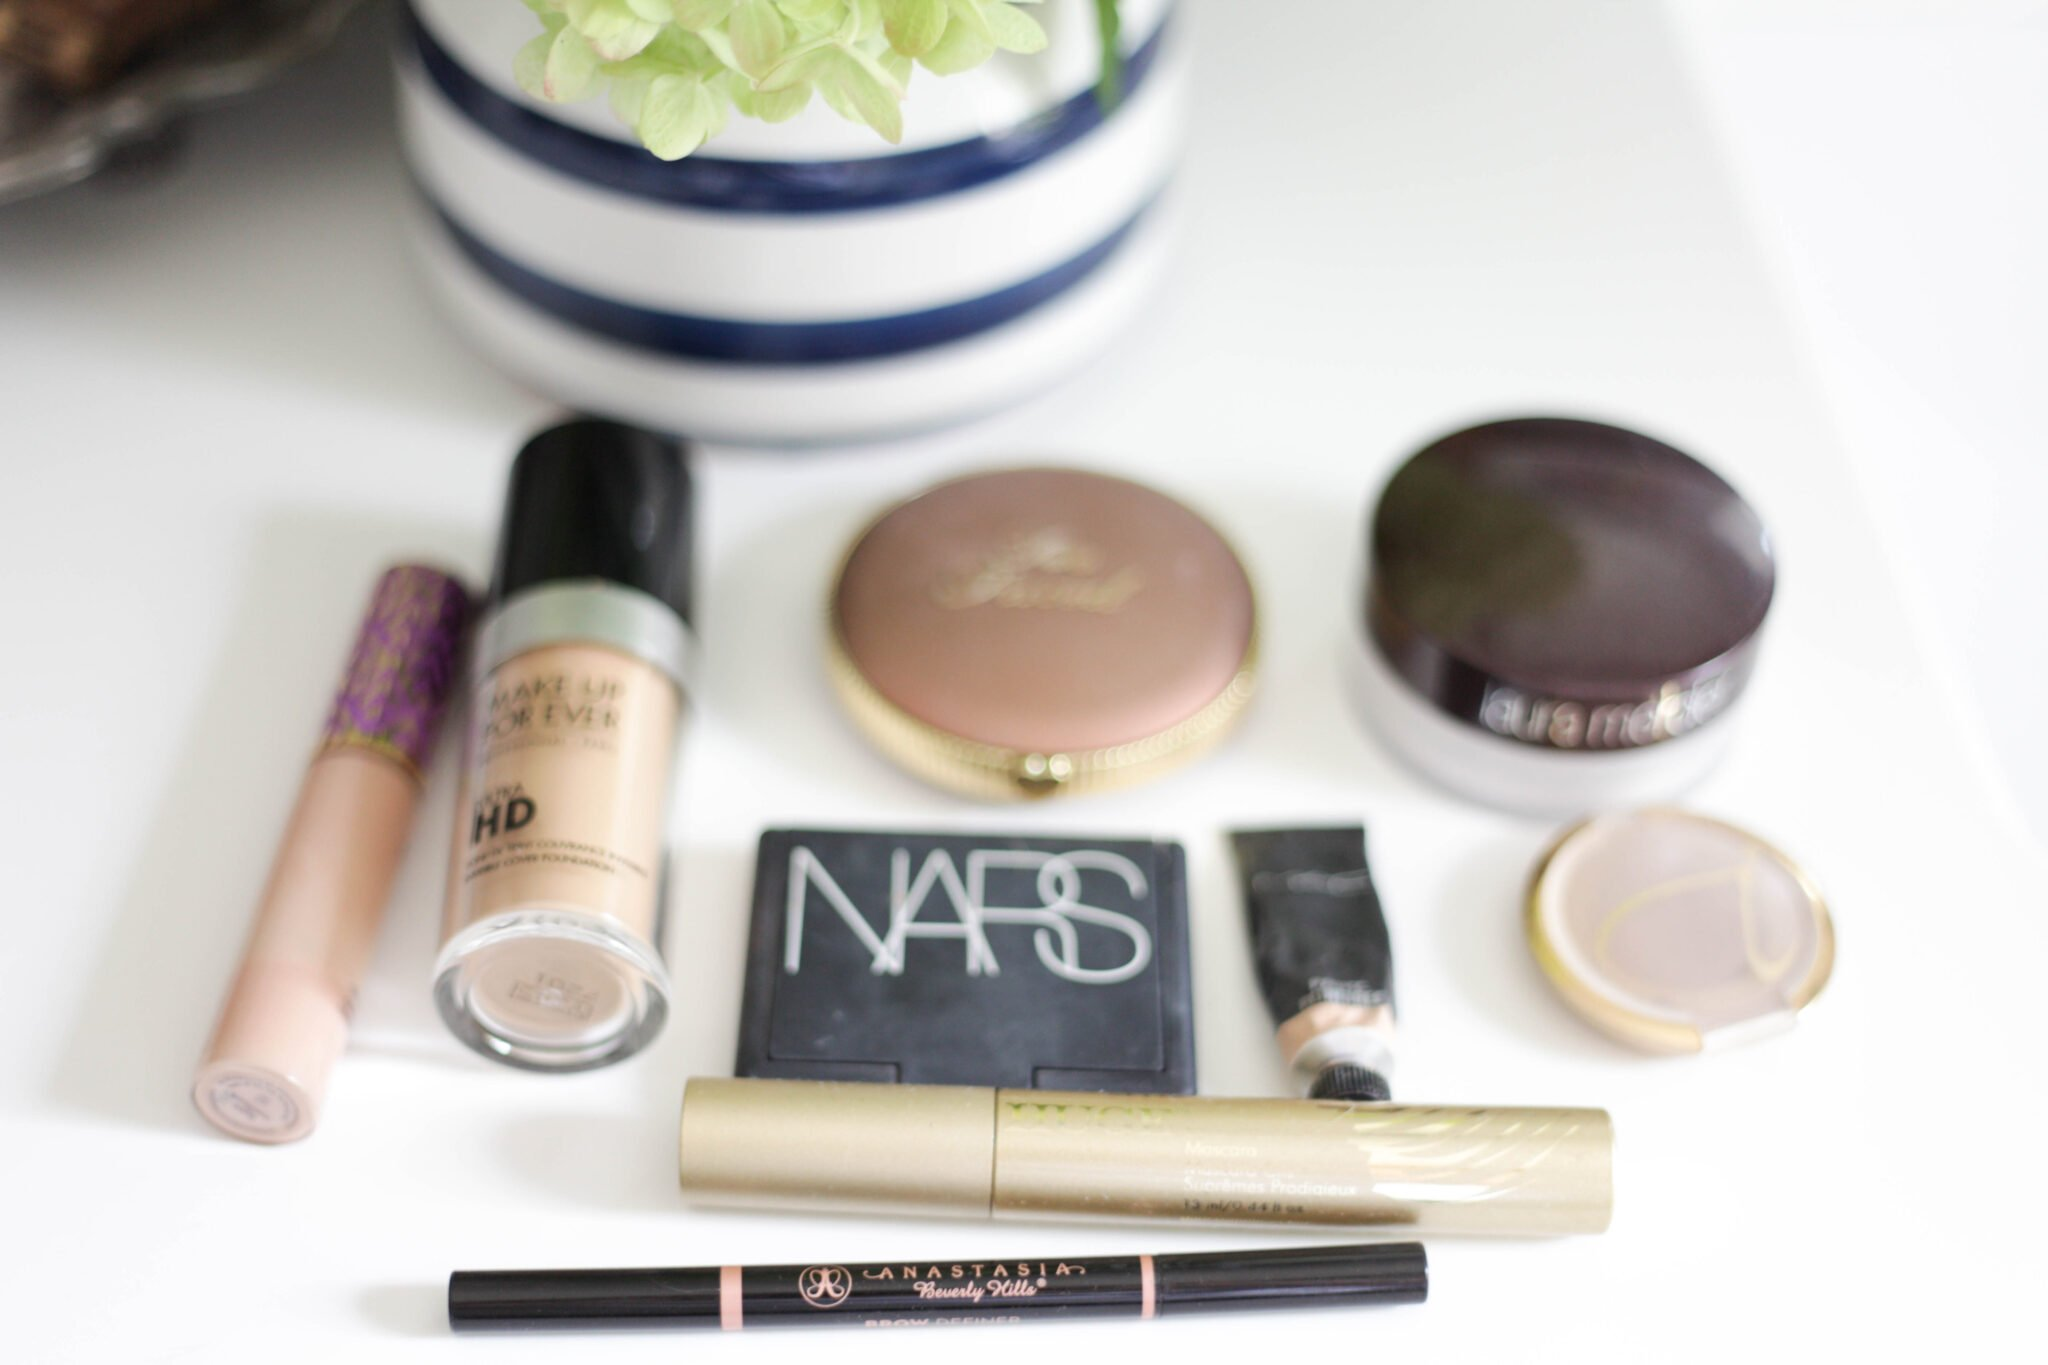 make up and beauty products I'm loving